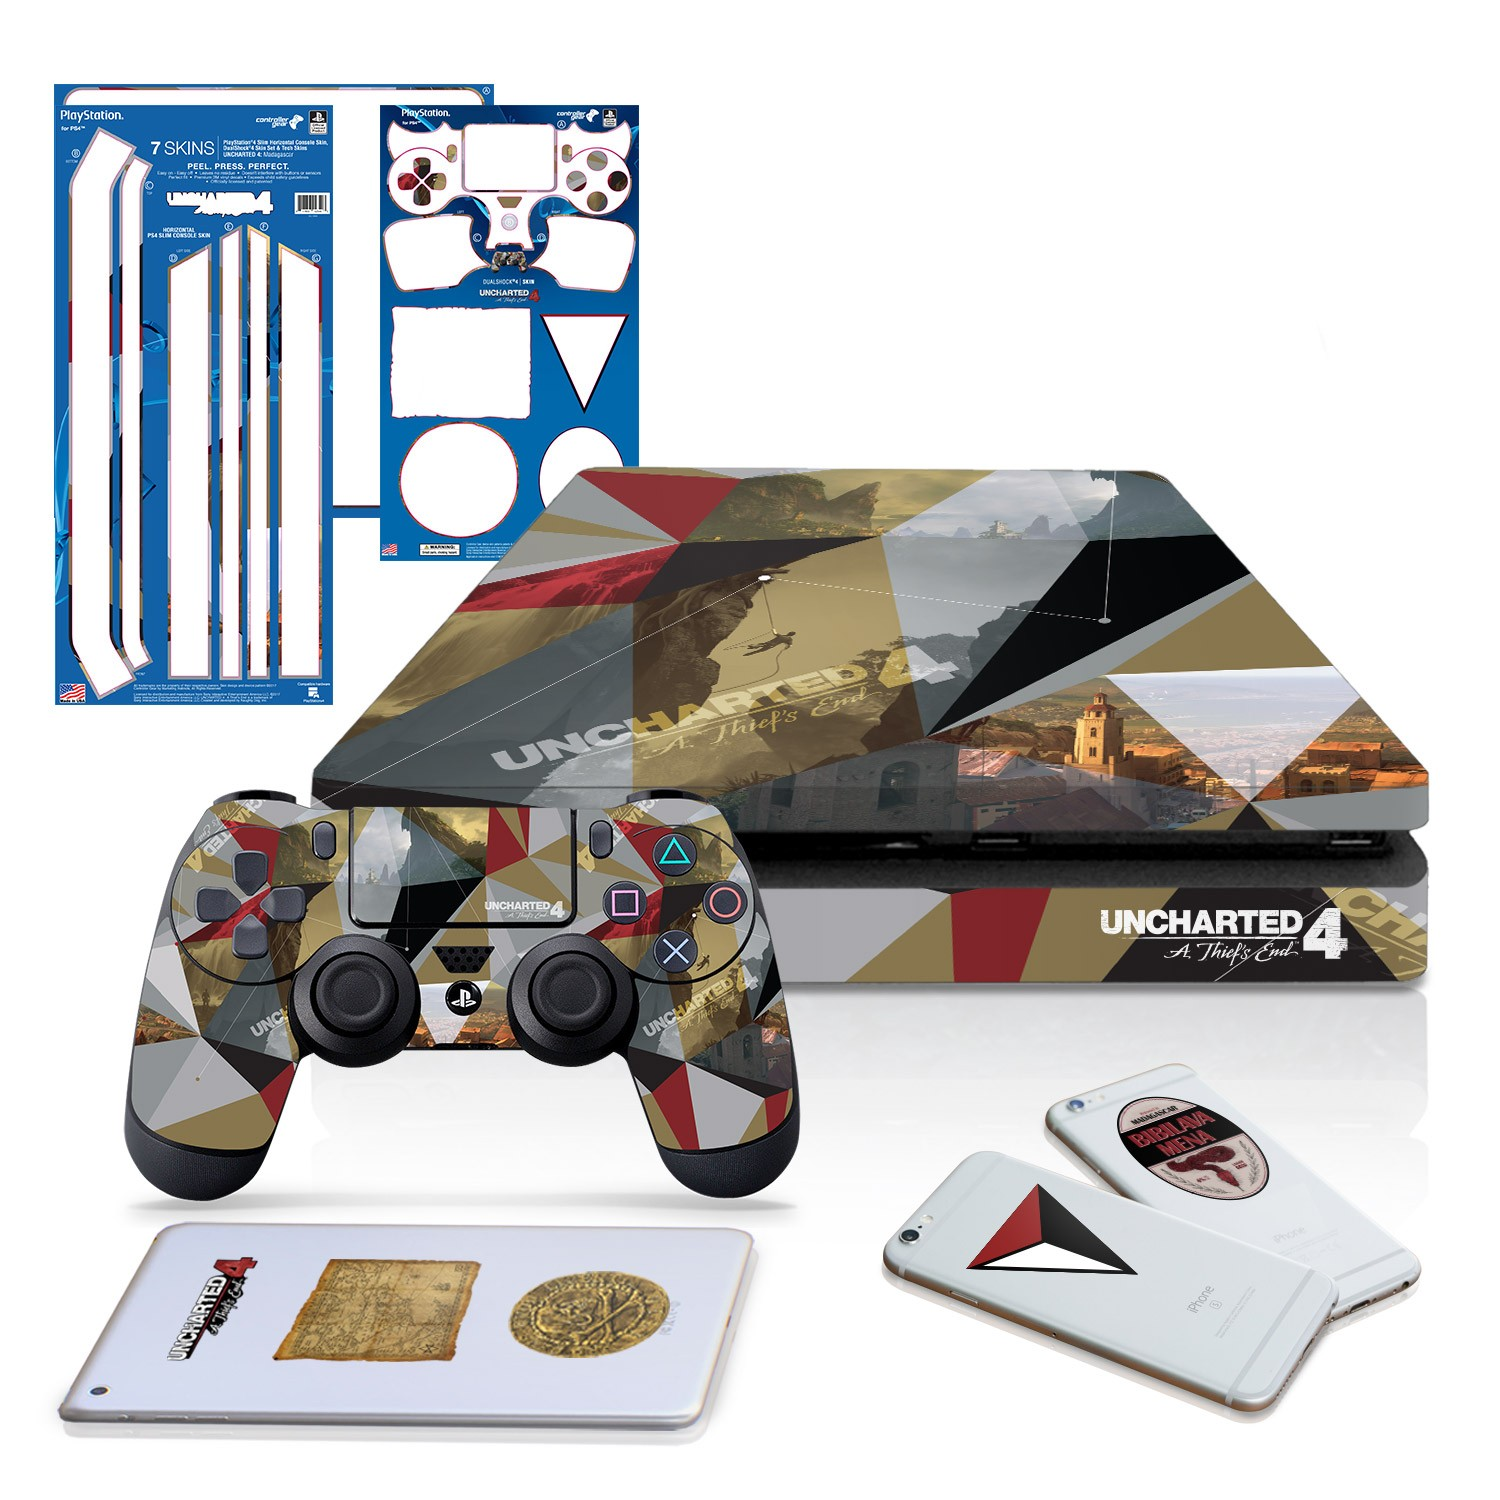 Uncharted 4 Madagascar - PS4 Slim Horizontal Console and Controller Gaming Skin Pack - Officially Licensed by PlayStation